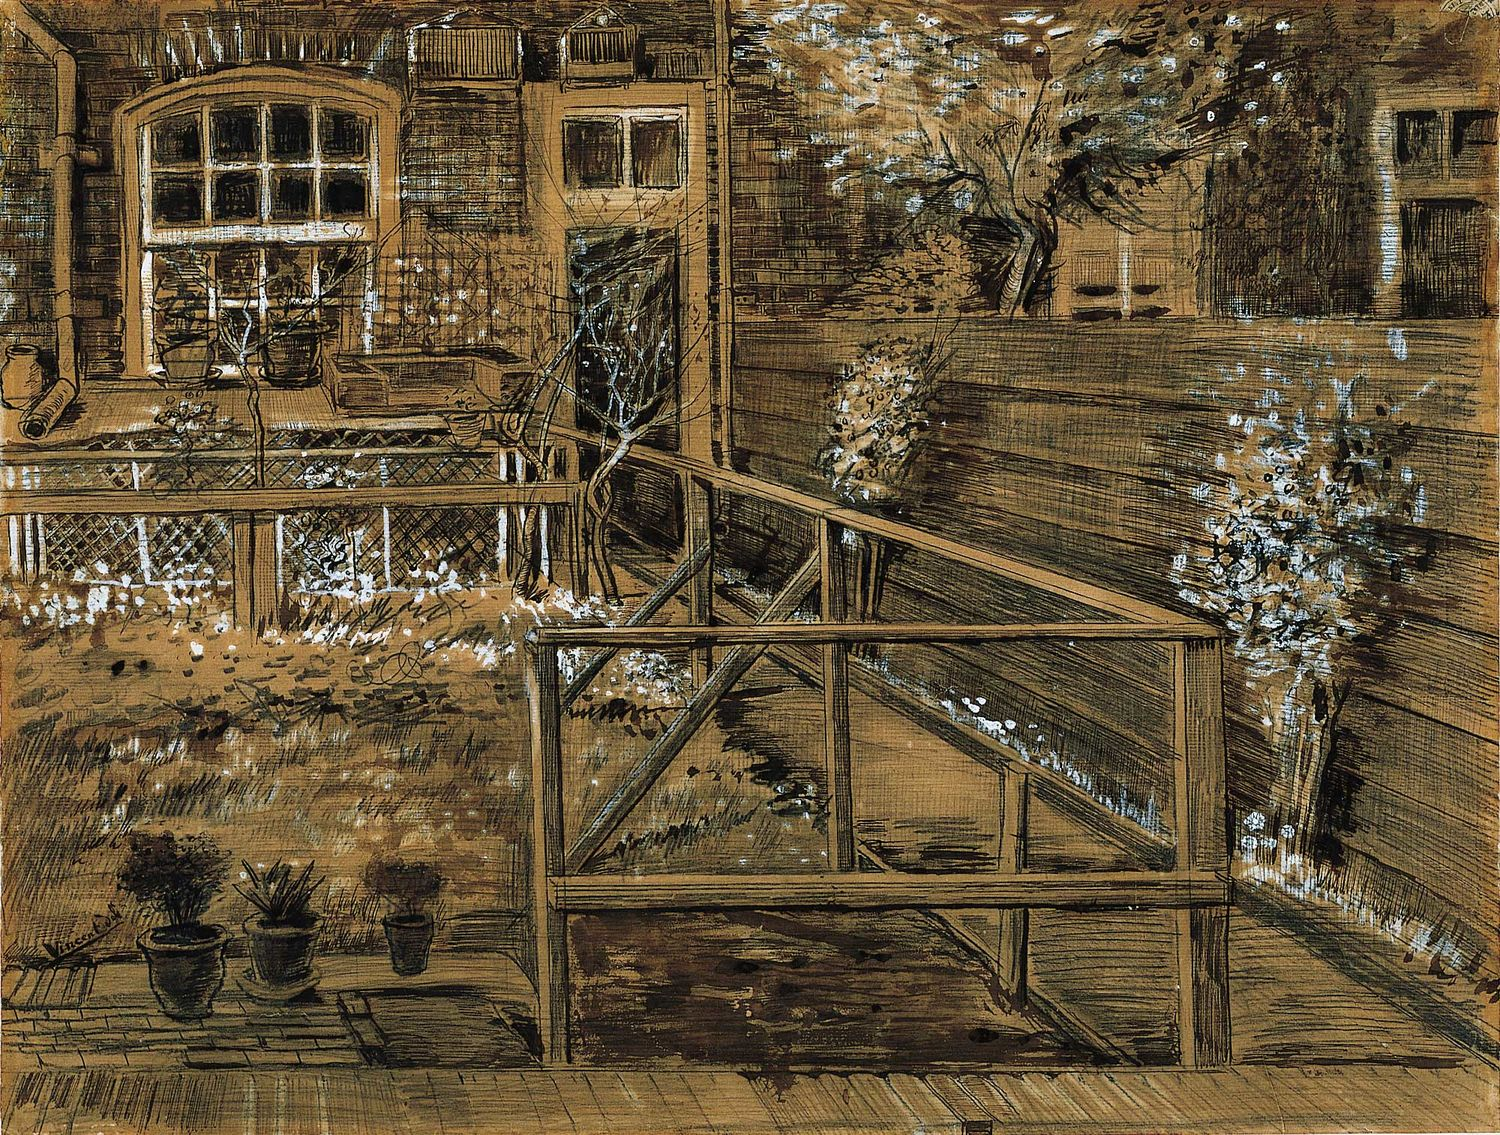 Vincent van Gogh (Dutch, 1853‒1890), Back Garden of Sien's Mother's House, the Hague, 1882, sepia ink, gouache, and graphite on paper, laid on Bristol board, Norton Simon Art Foundation